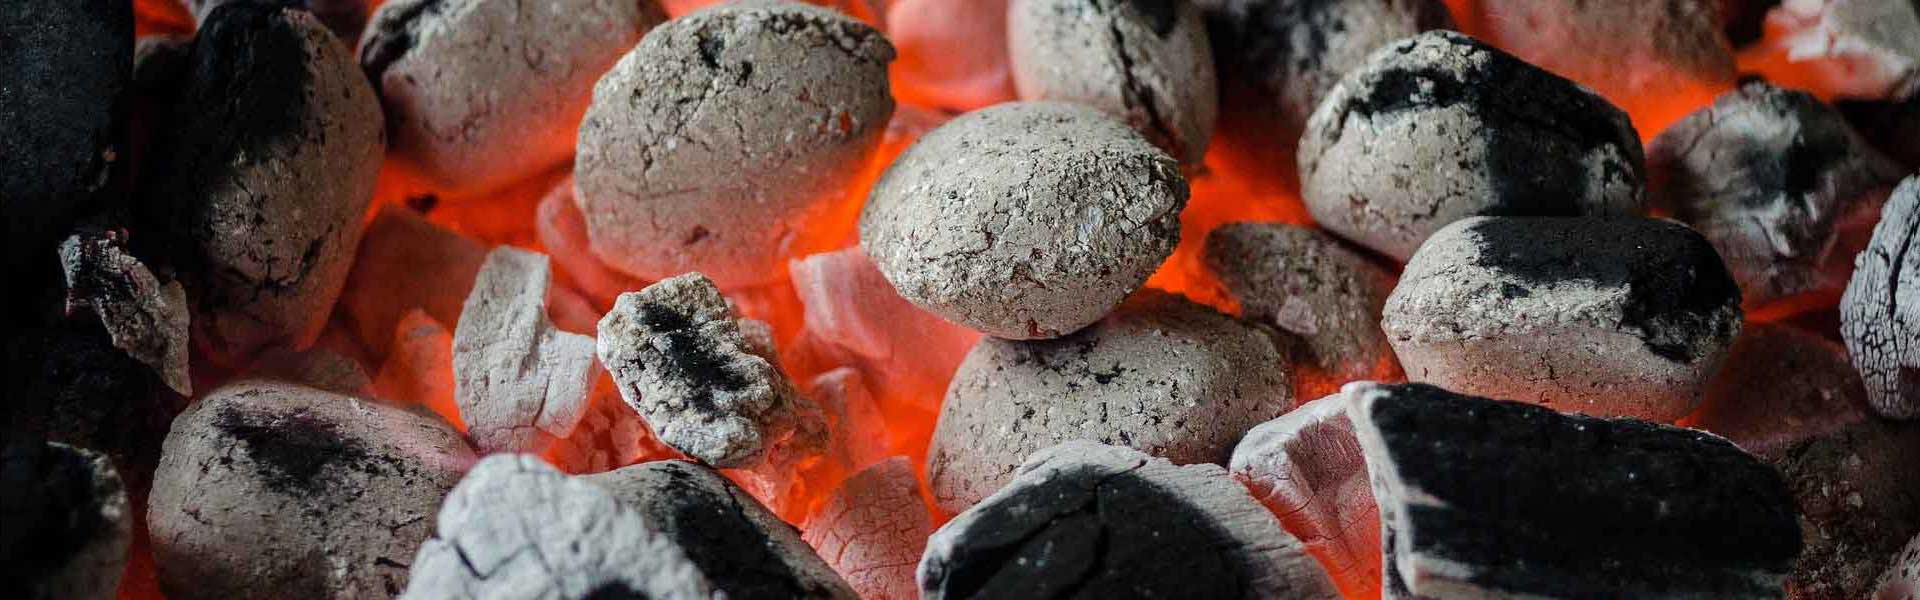 Finglas Fuels Dublin Coal and firewood Logs - best solid fuels prices - best coal in Dublin